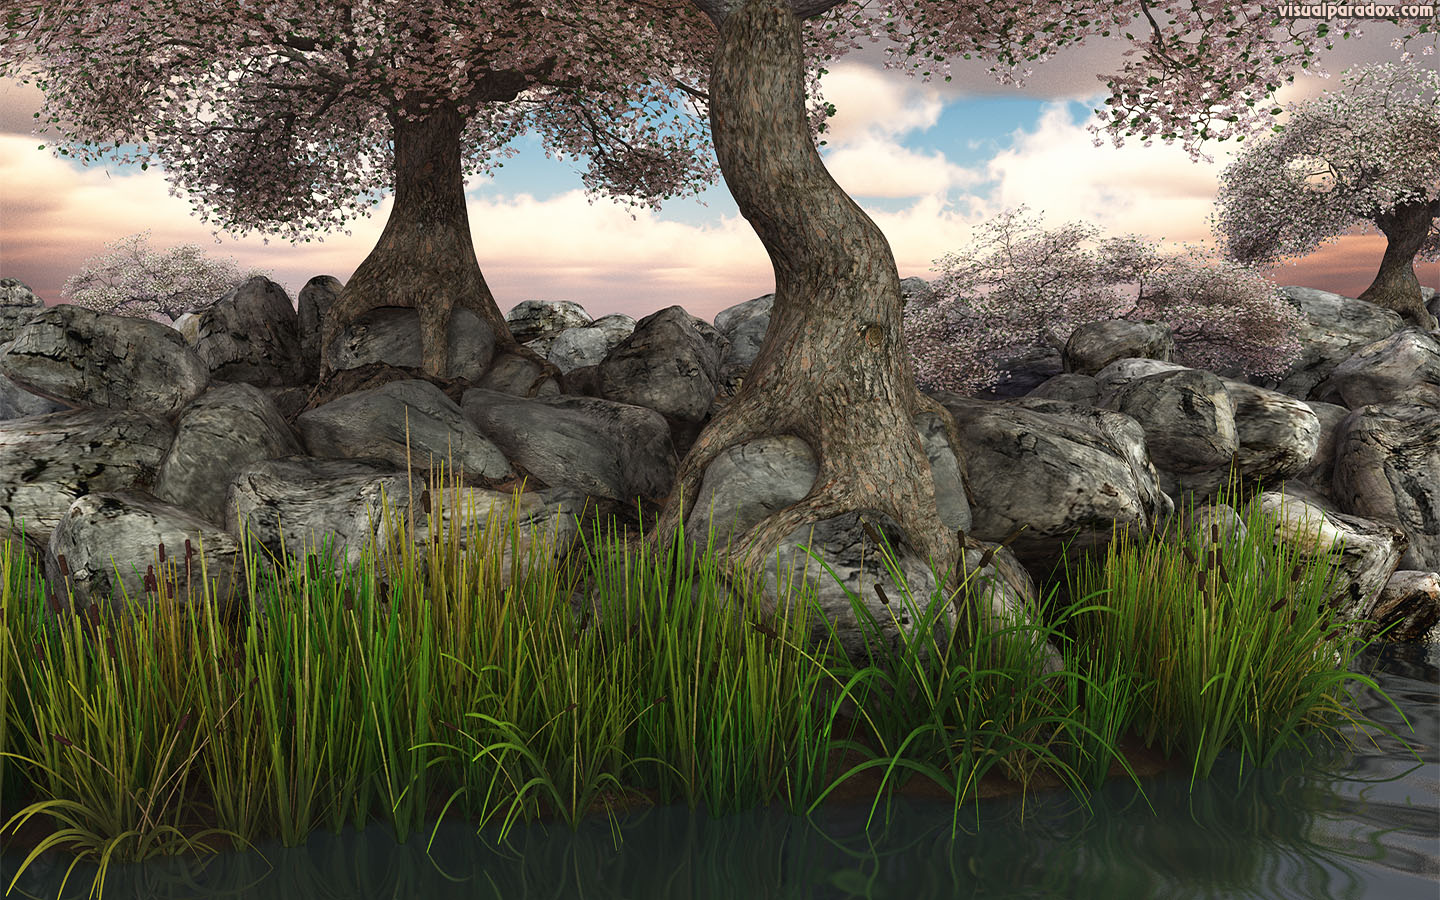 trees, blossoms, flowers, reeds, lake, pond, river, rocks, roots, knarled, tree, root, 3d, wallpaper, widescreen